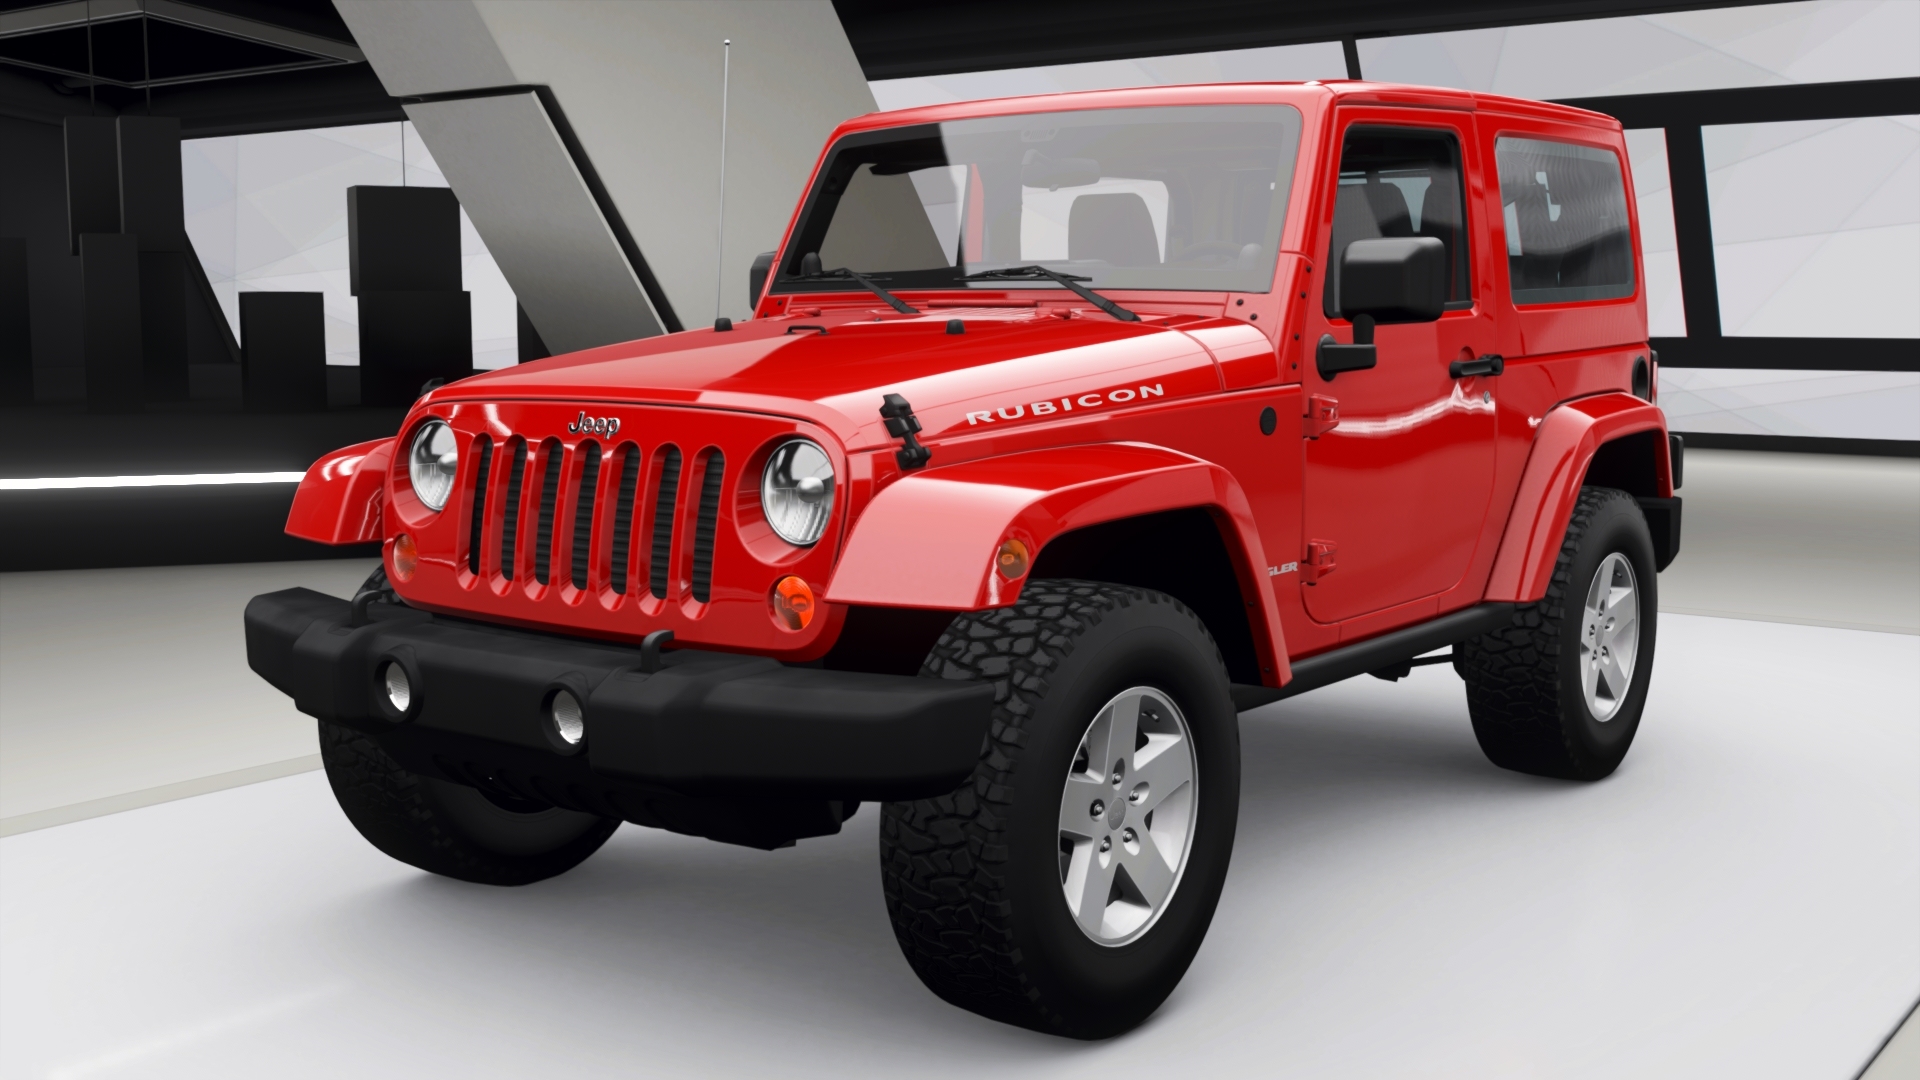 Jeep Wrangler Wiki >> Jeep Wrangler Rubicon Forza Motorsport Wiki Fandom Powered By Wikia